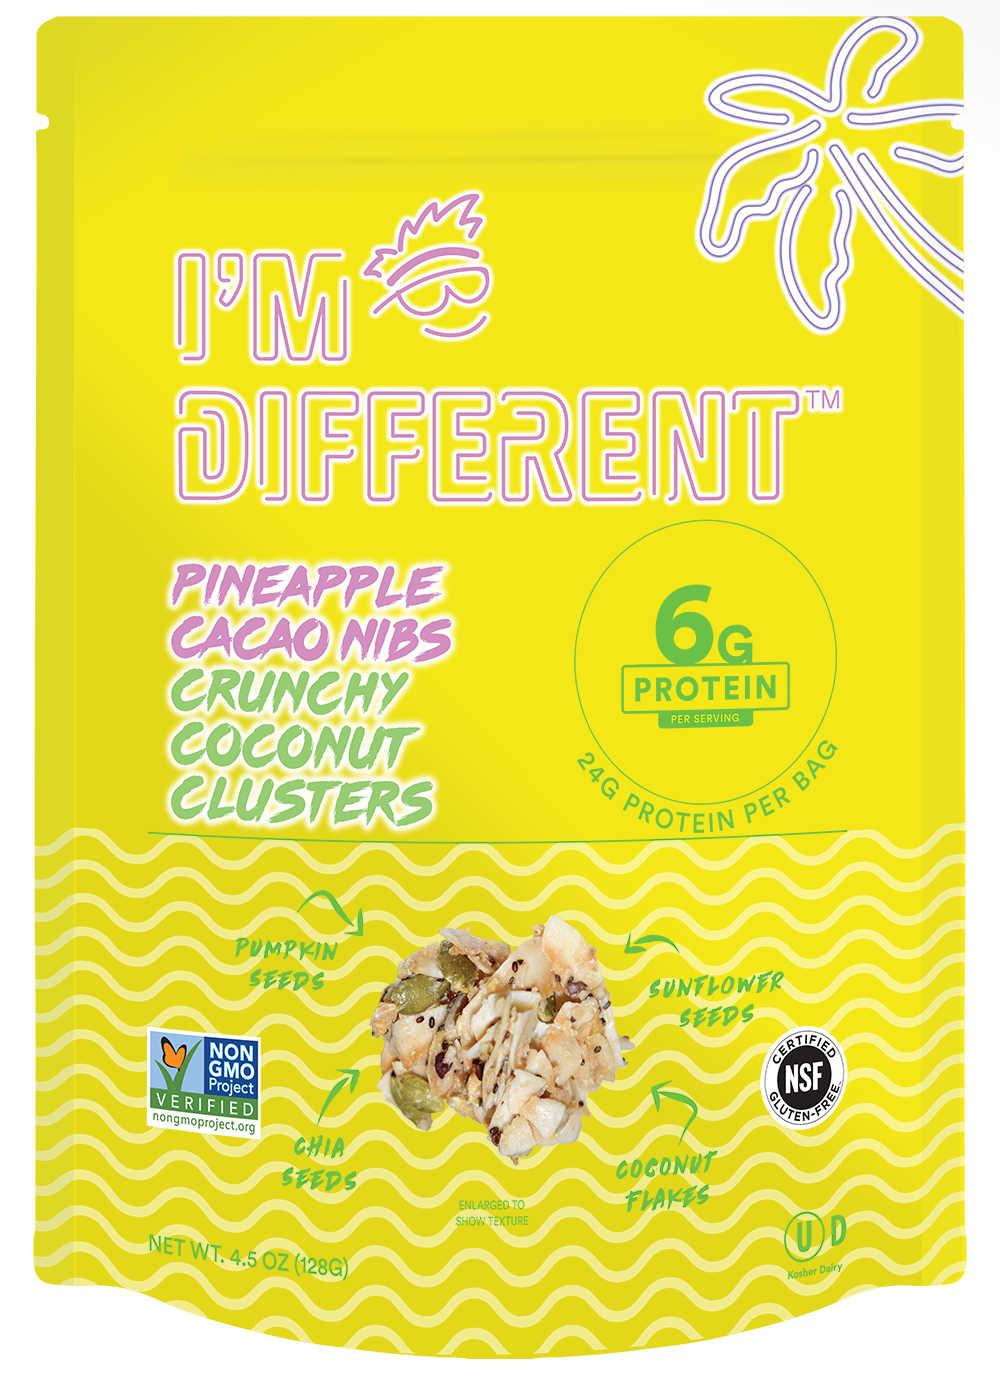 Pineapple Cacao Nibs